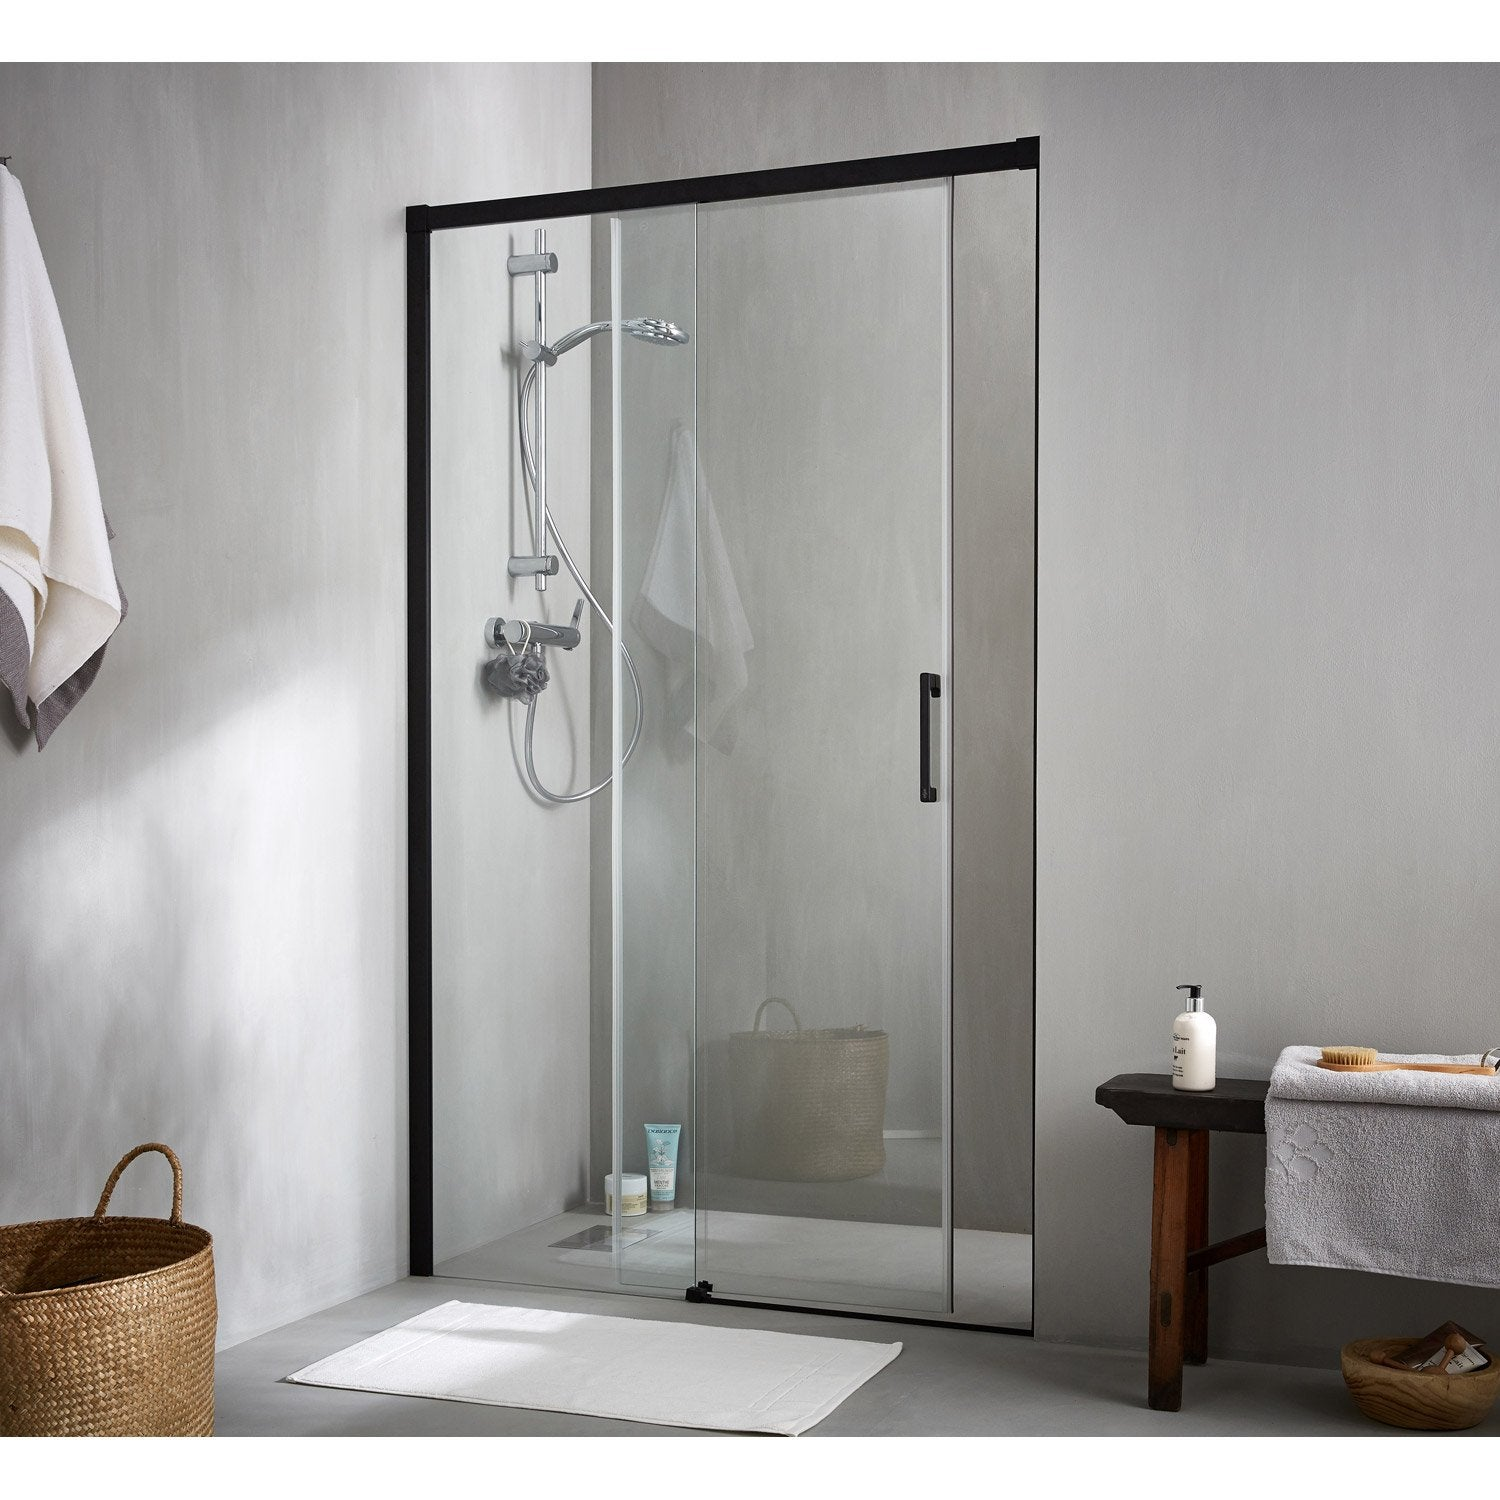 porte de douche coulissante 120 cm transparent remix leroy merlin. Black Bedroom Furniture Sets. Home Design Ideas